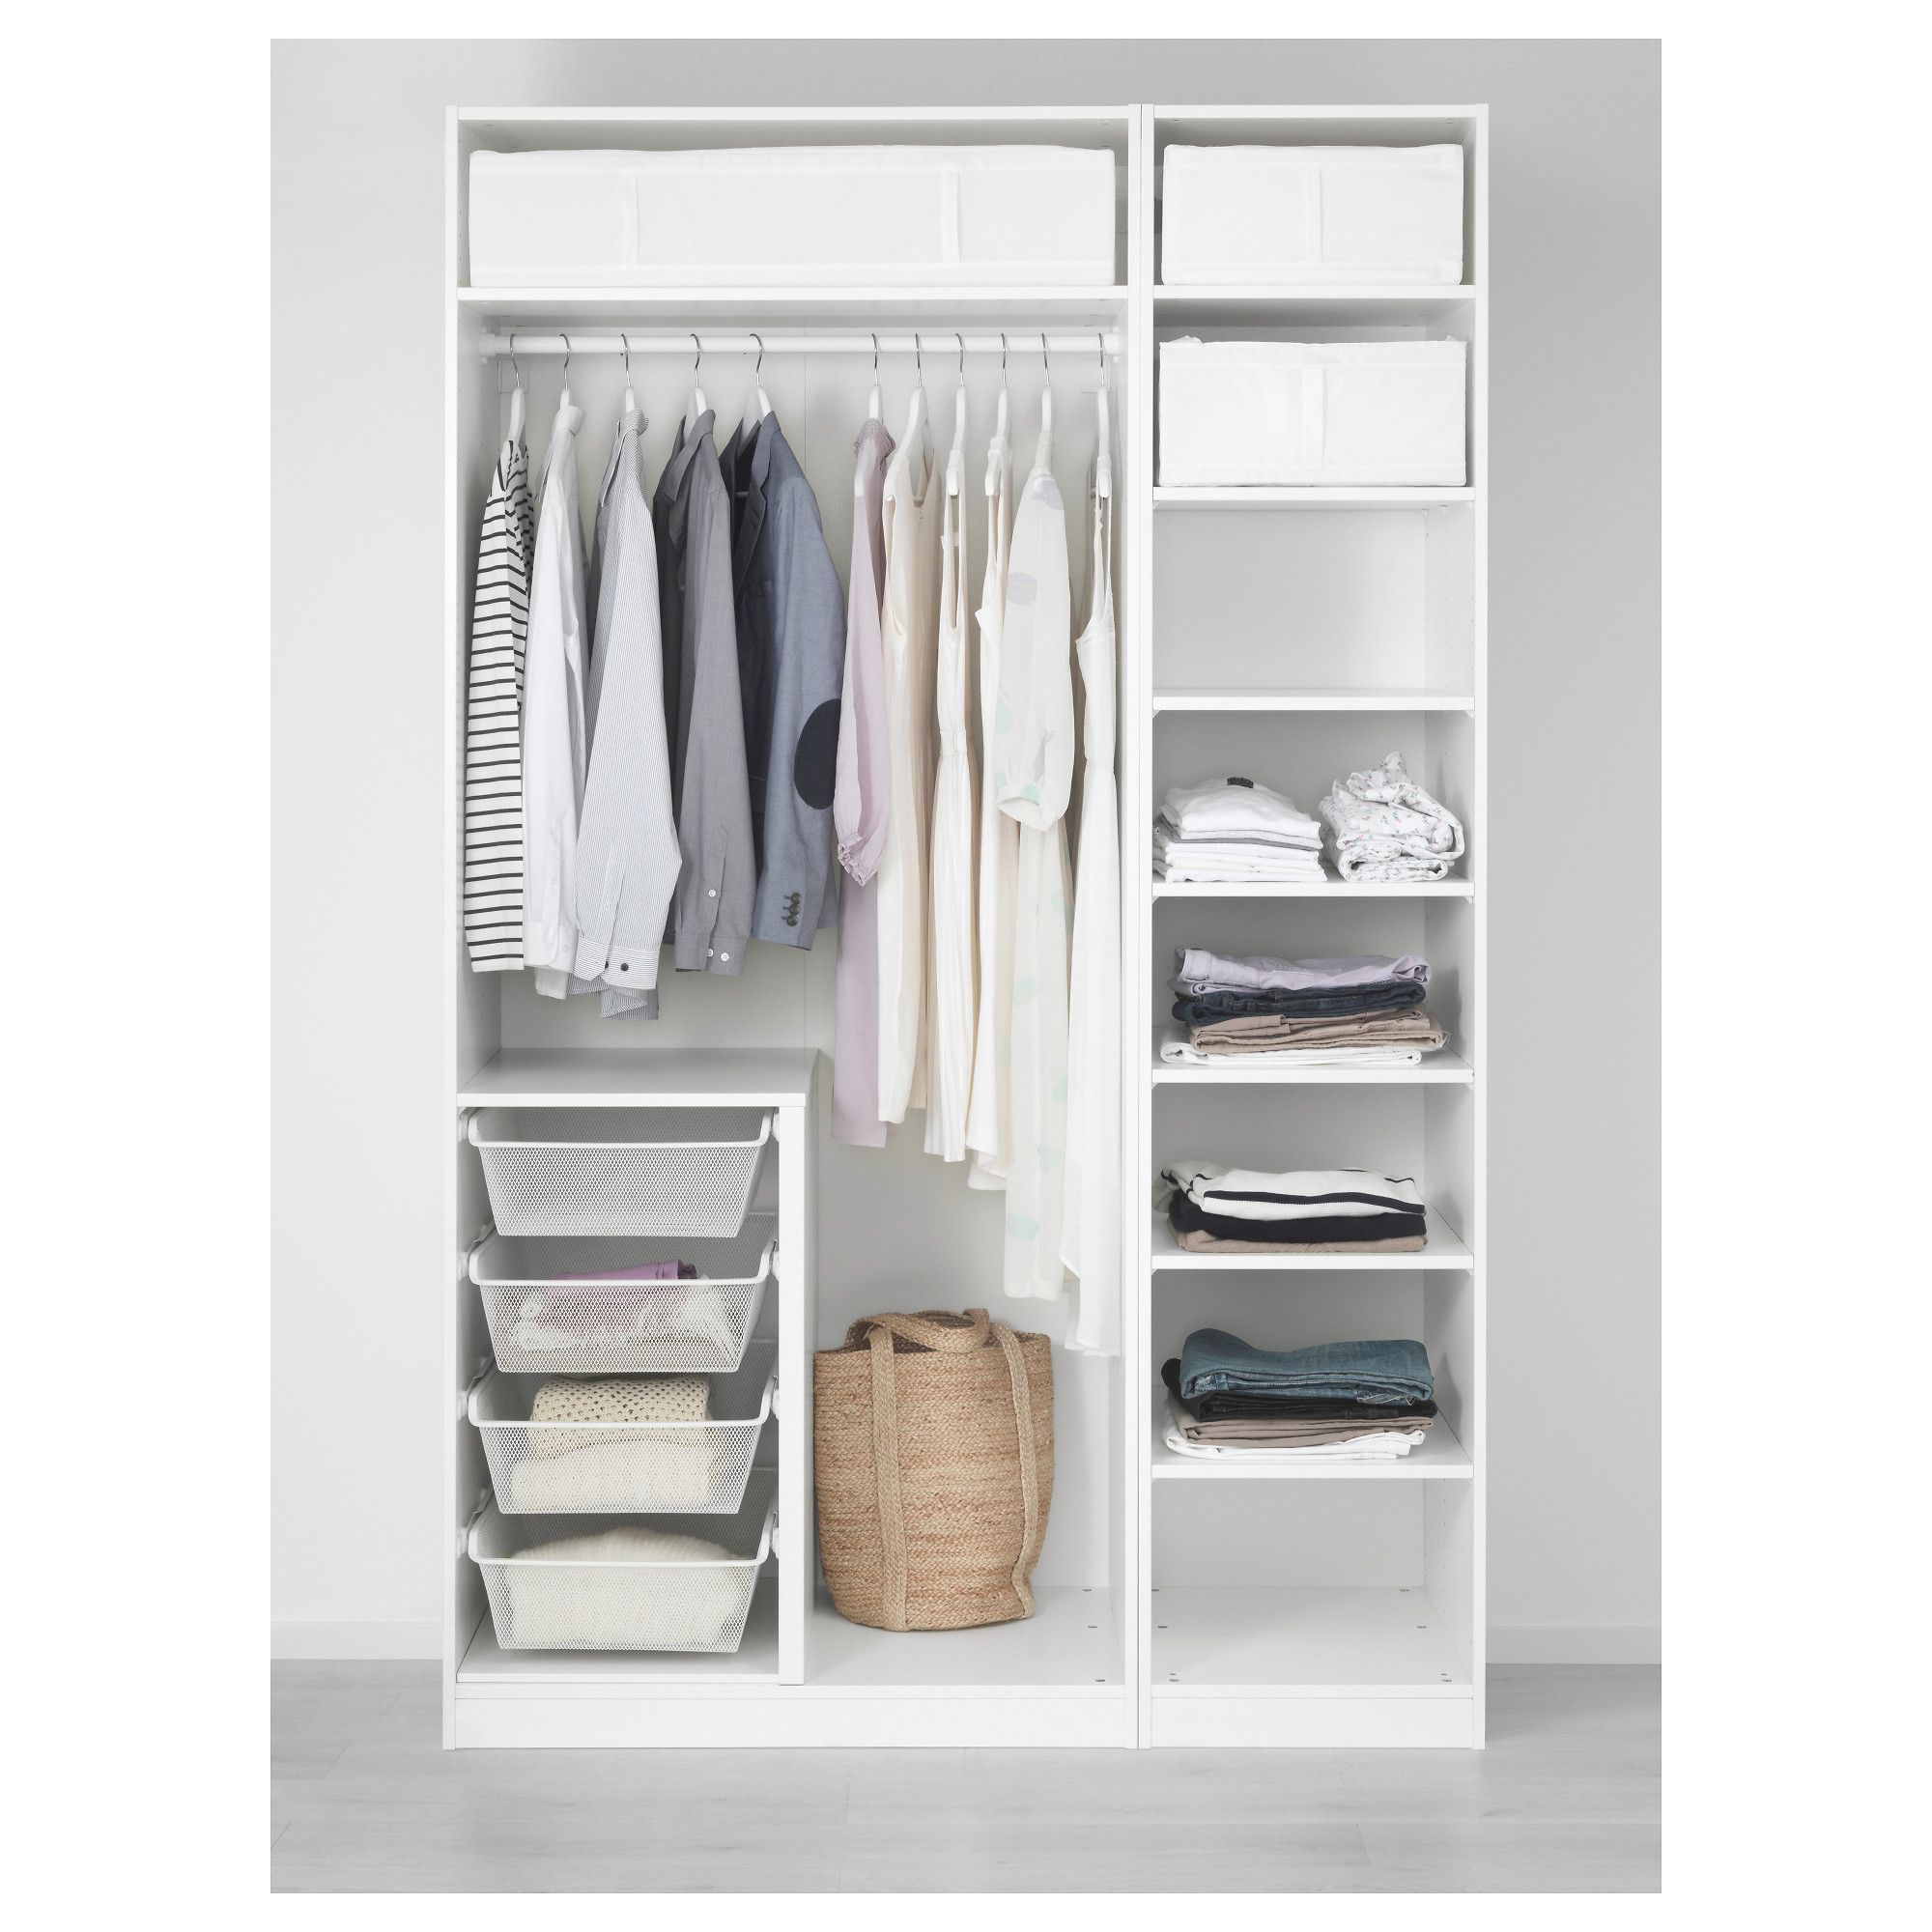 this pax can the year in warranty brochure adapt systems pin closet wardrobe white read ikea limited about easily terms and you